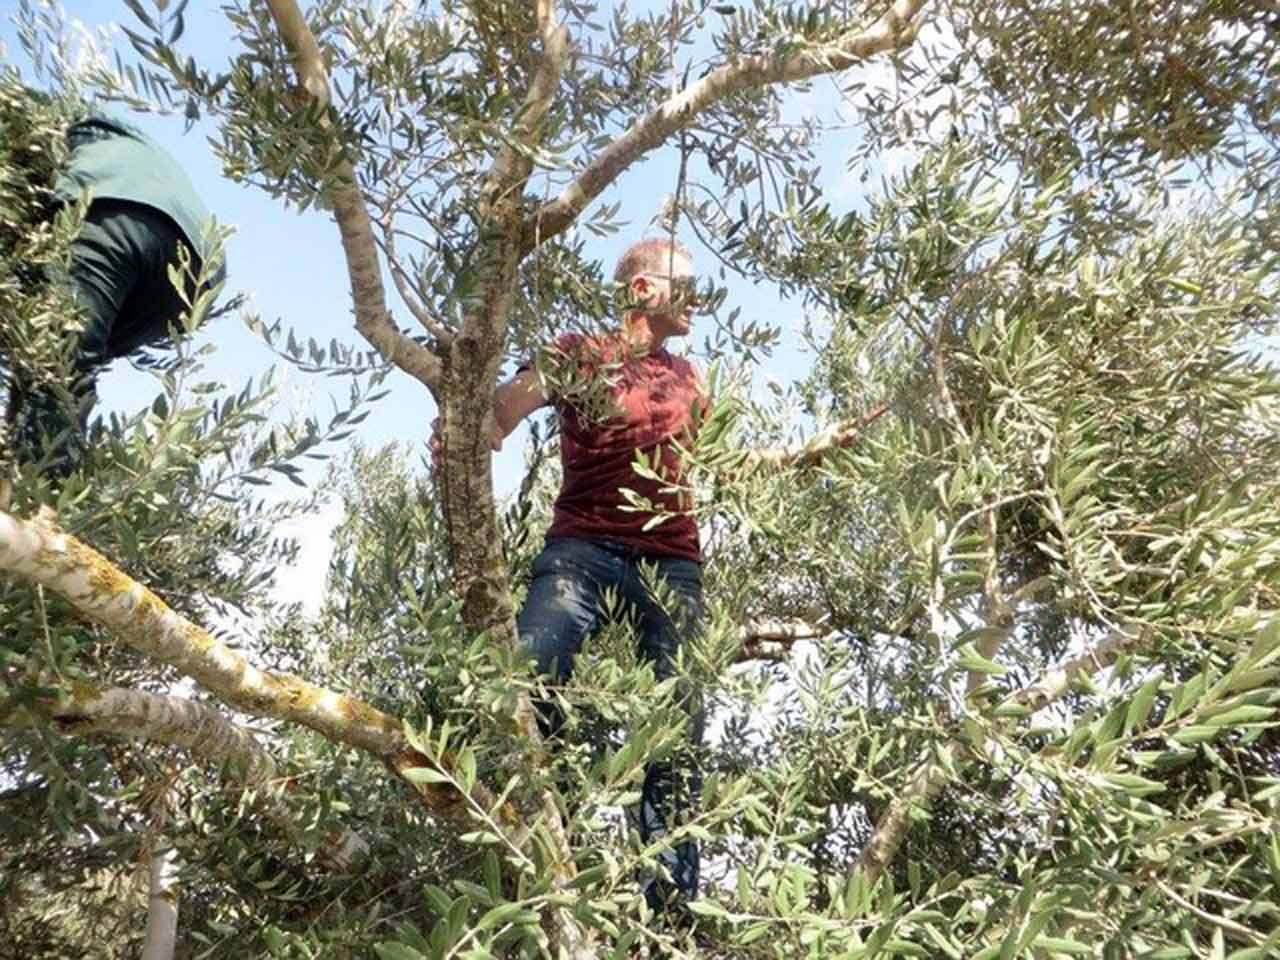 Maad Abu-Ghazalah in one of his olive trees at Daily Hugz, Asira al-Shimaliyah, Palestine